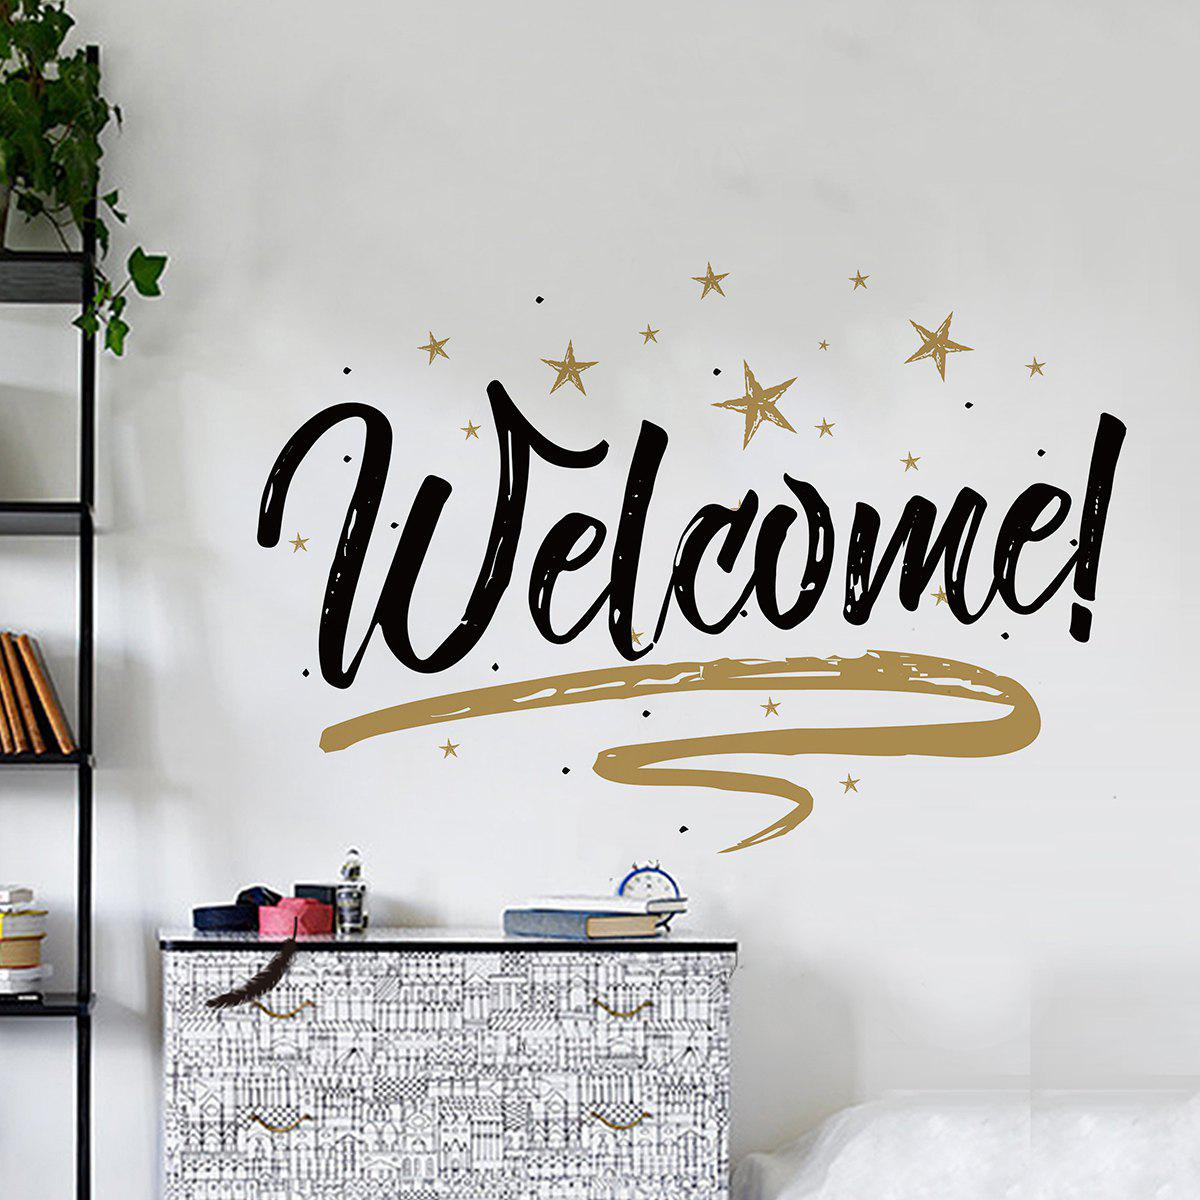 Removable Welcome Letter Shop Door Wall Sticker - BLACK 57*38CM